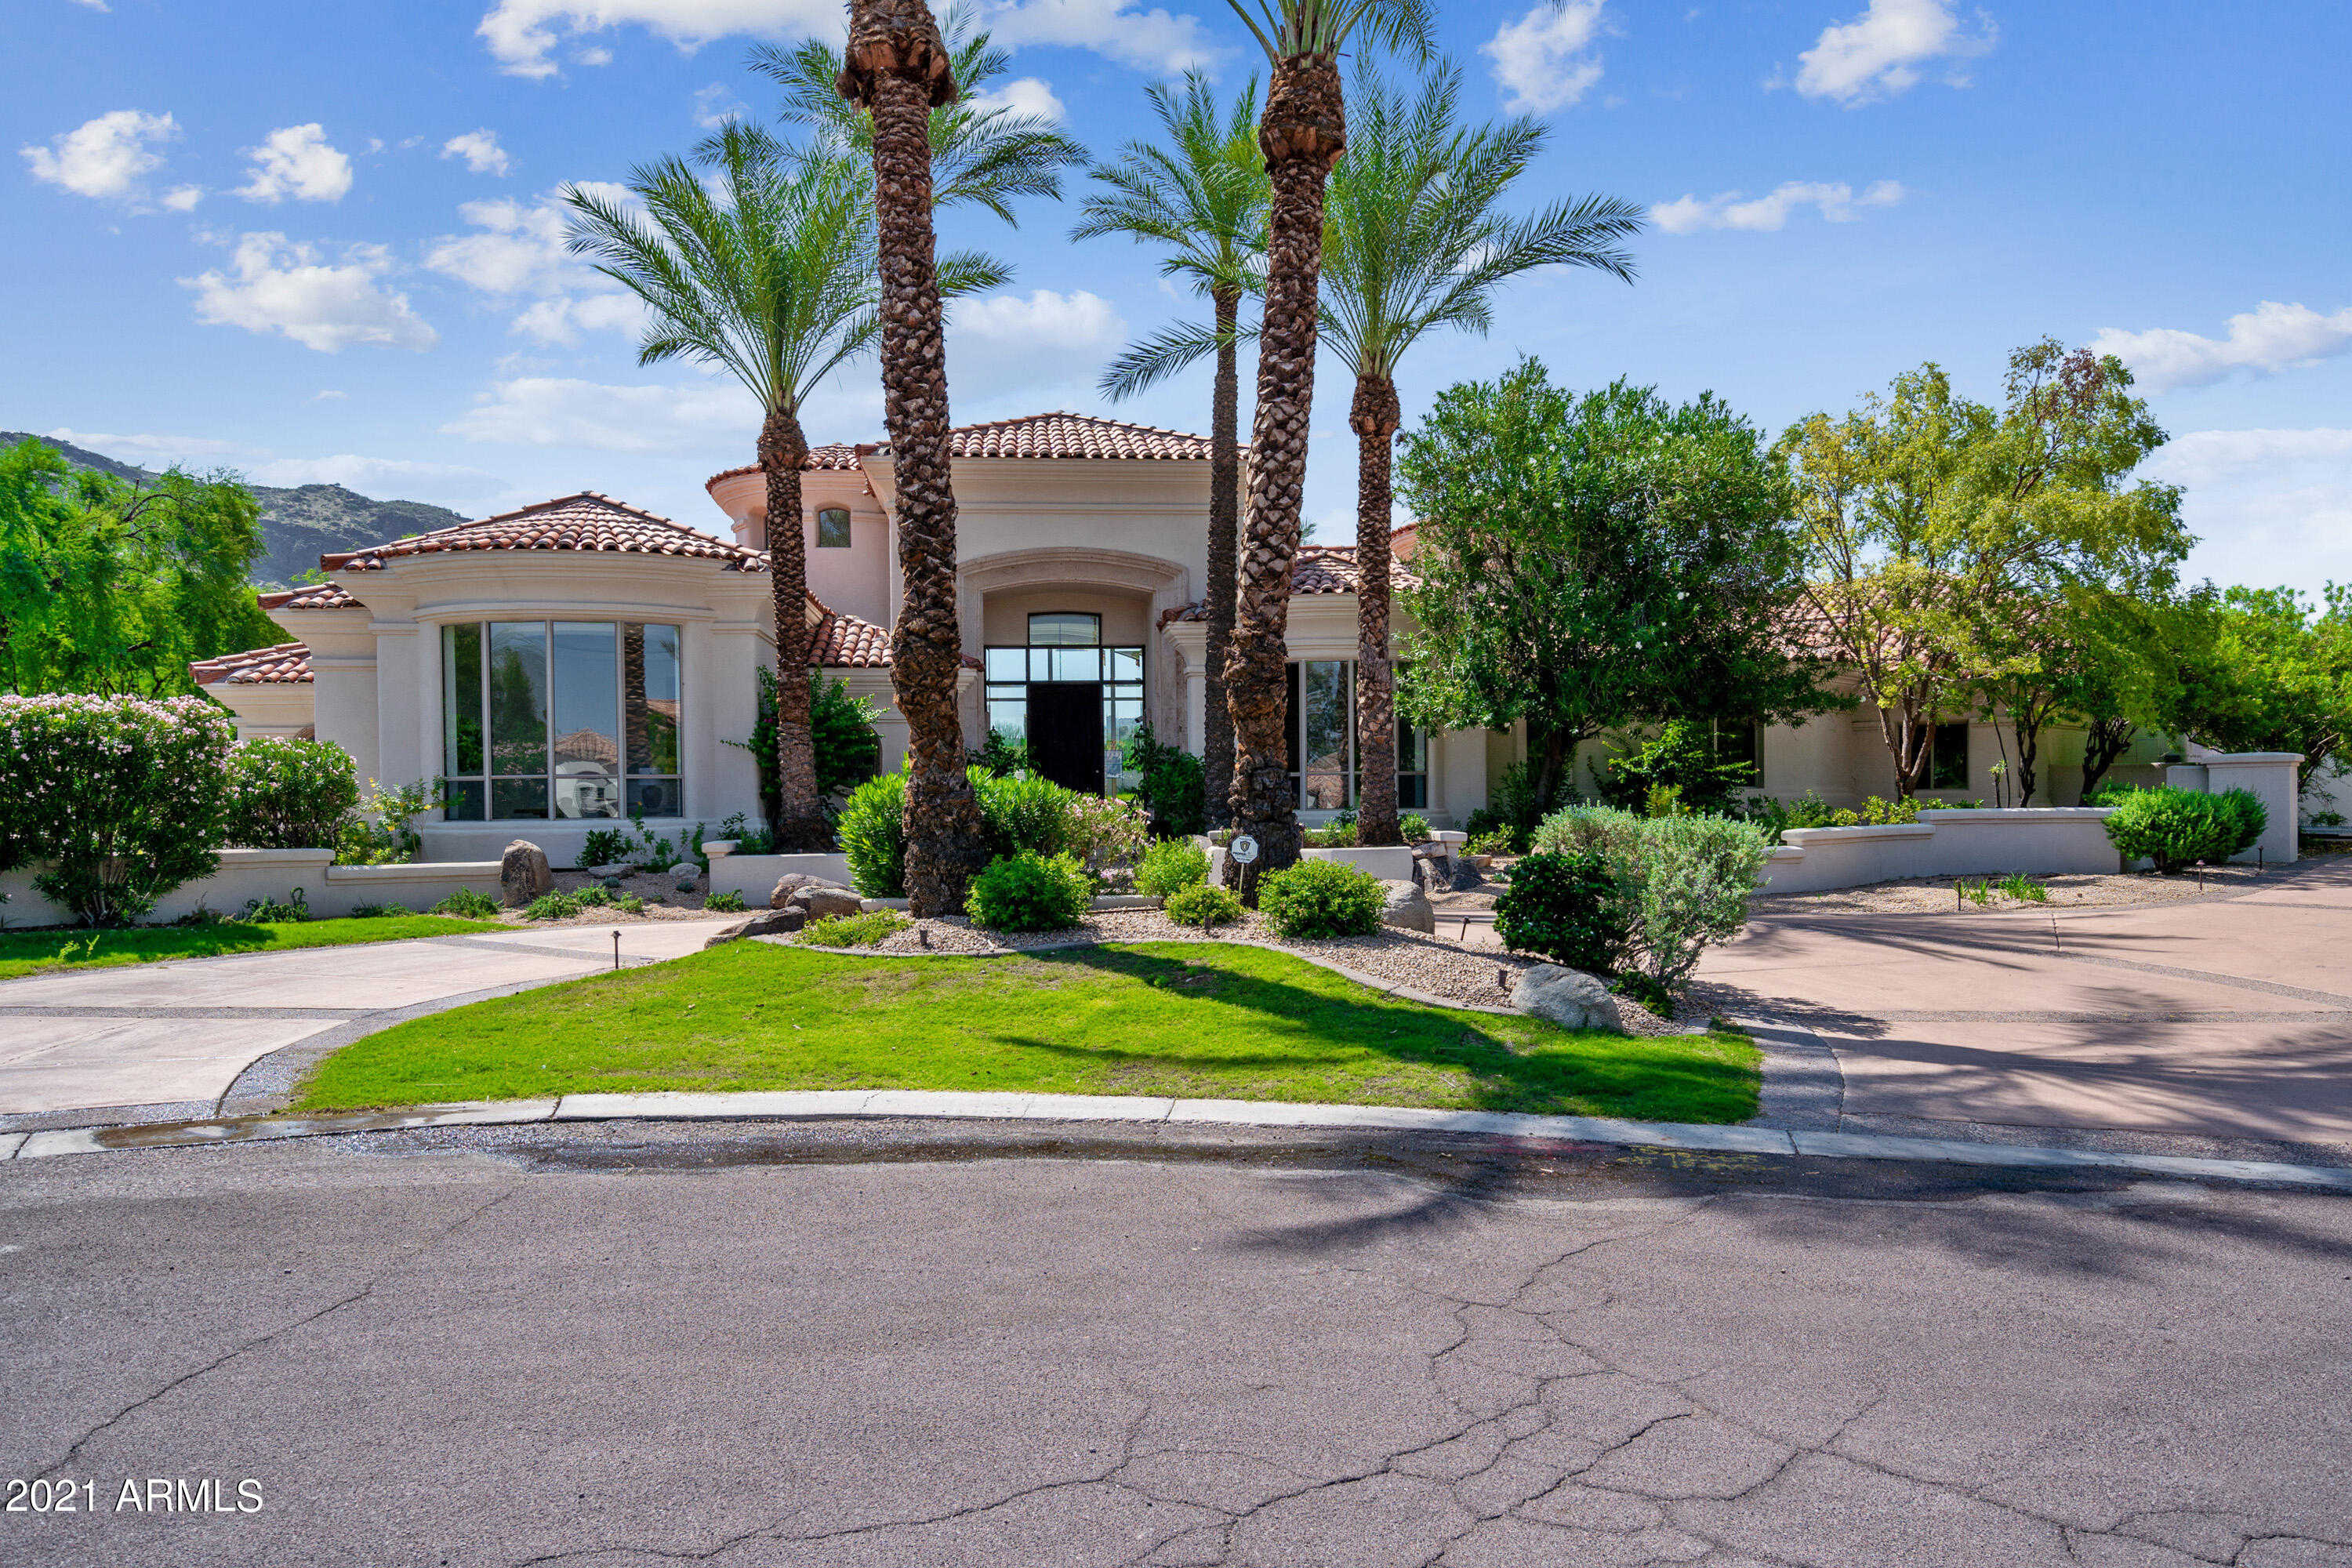 $3,875,000 - 5Br/7Ba - Home for Sale in Canyon Horizons, Paradise Valley